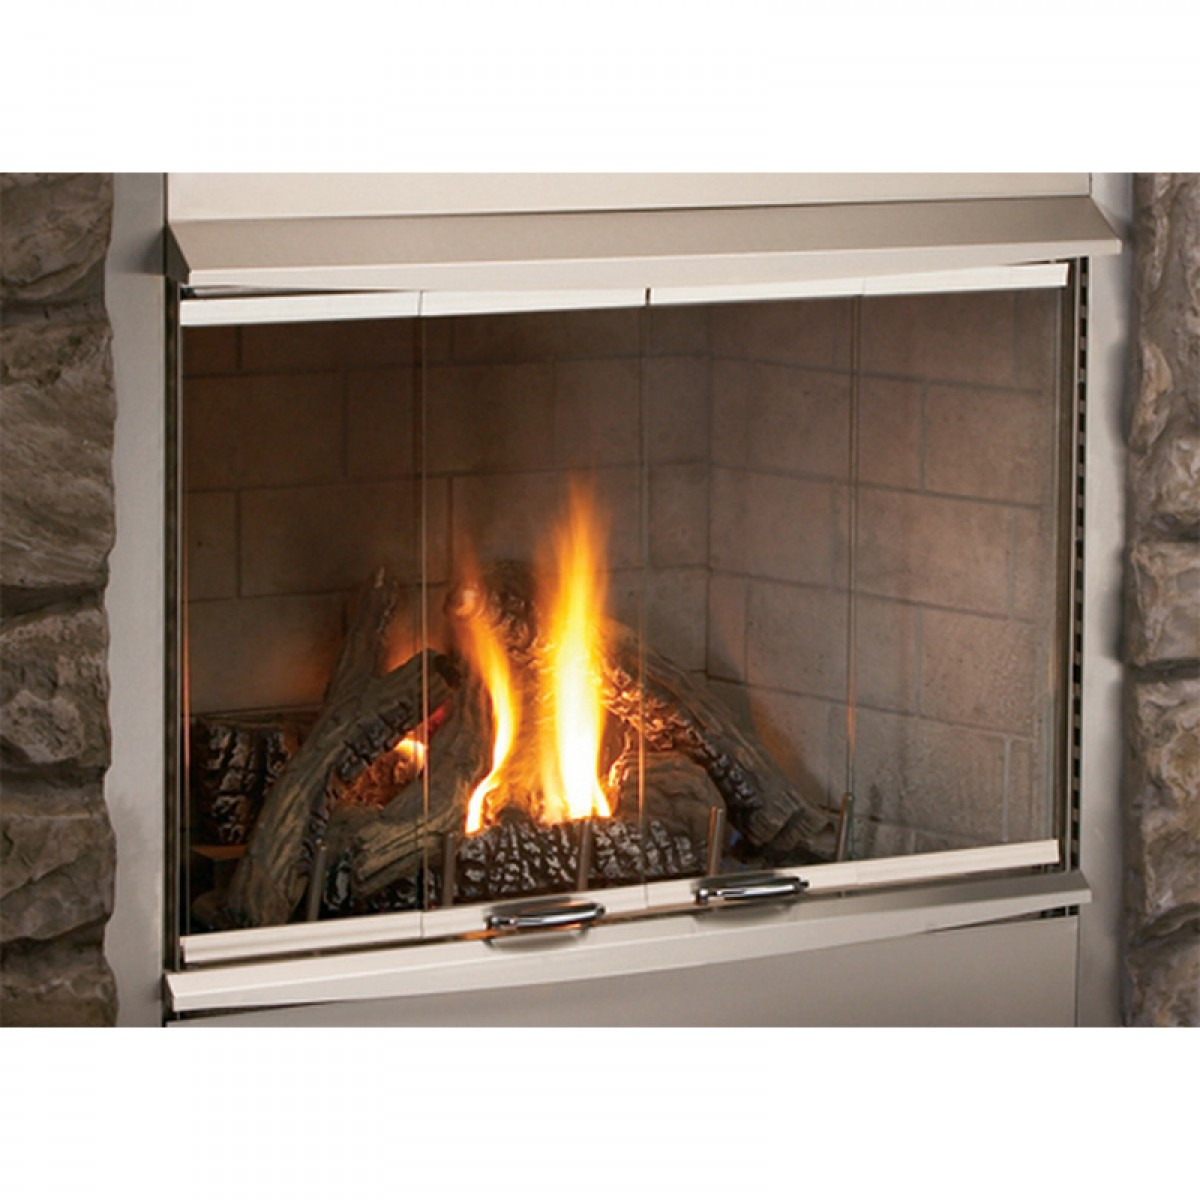 Ihp Superior Vre Pen 36 Ng Ventfree Fireplace White